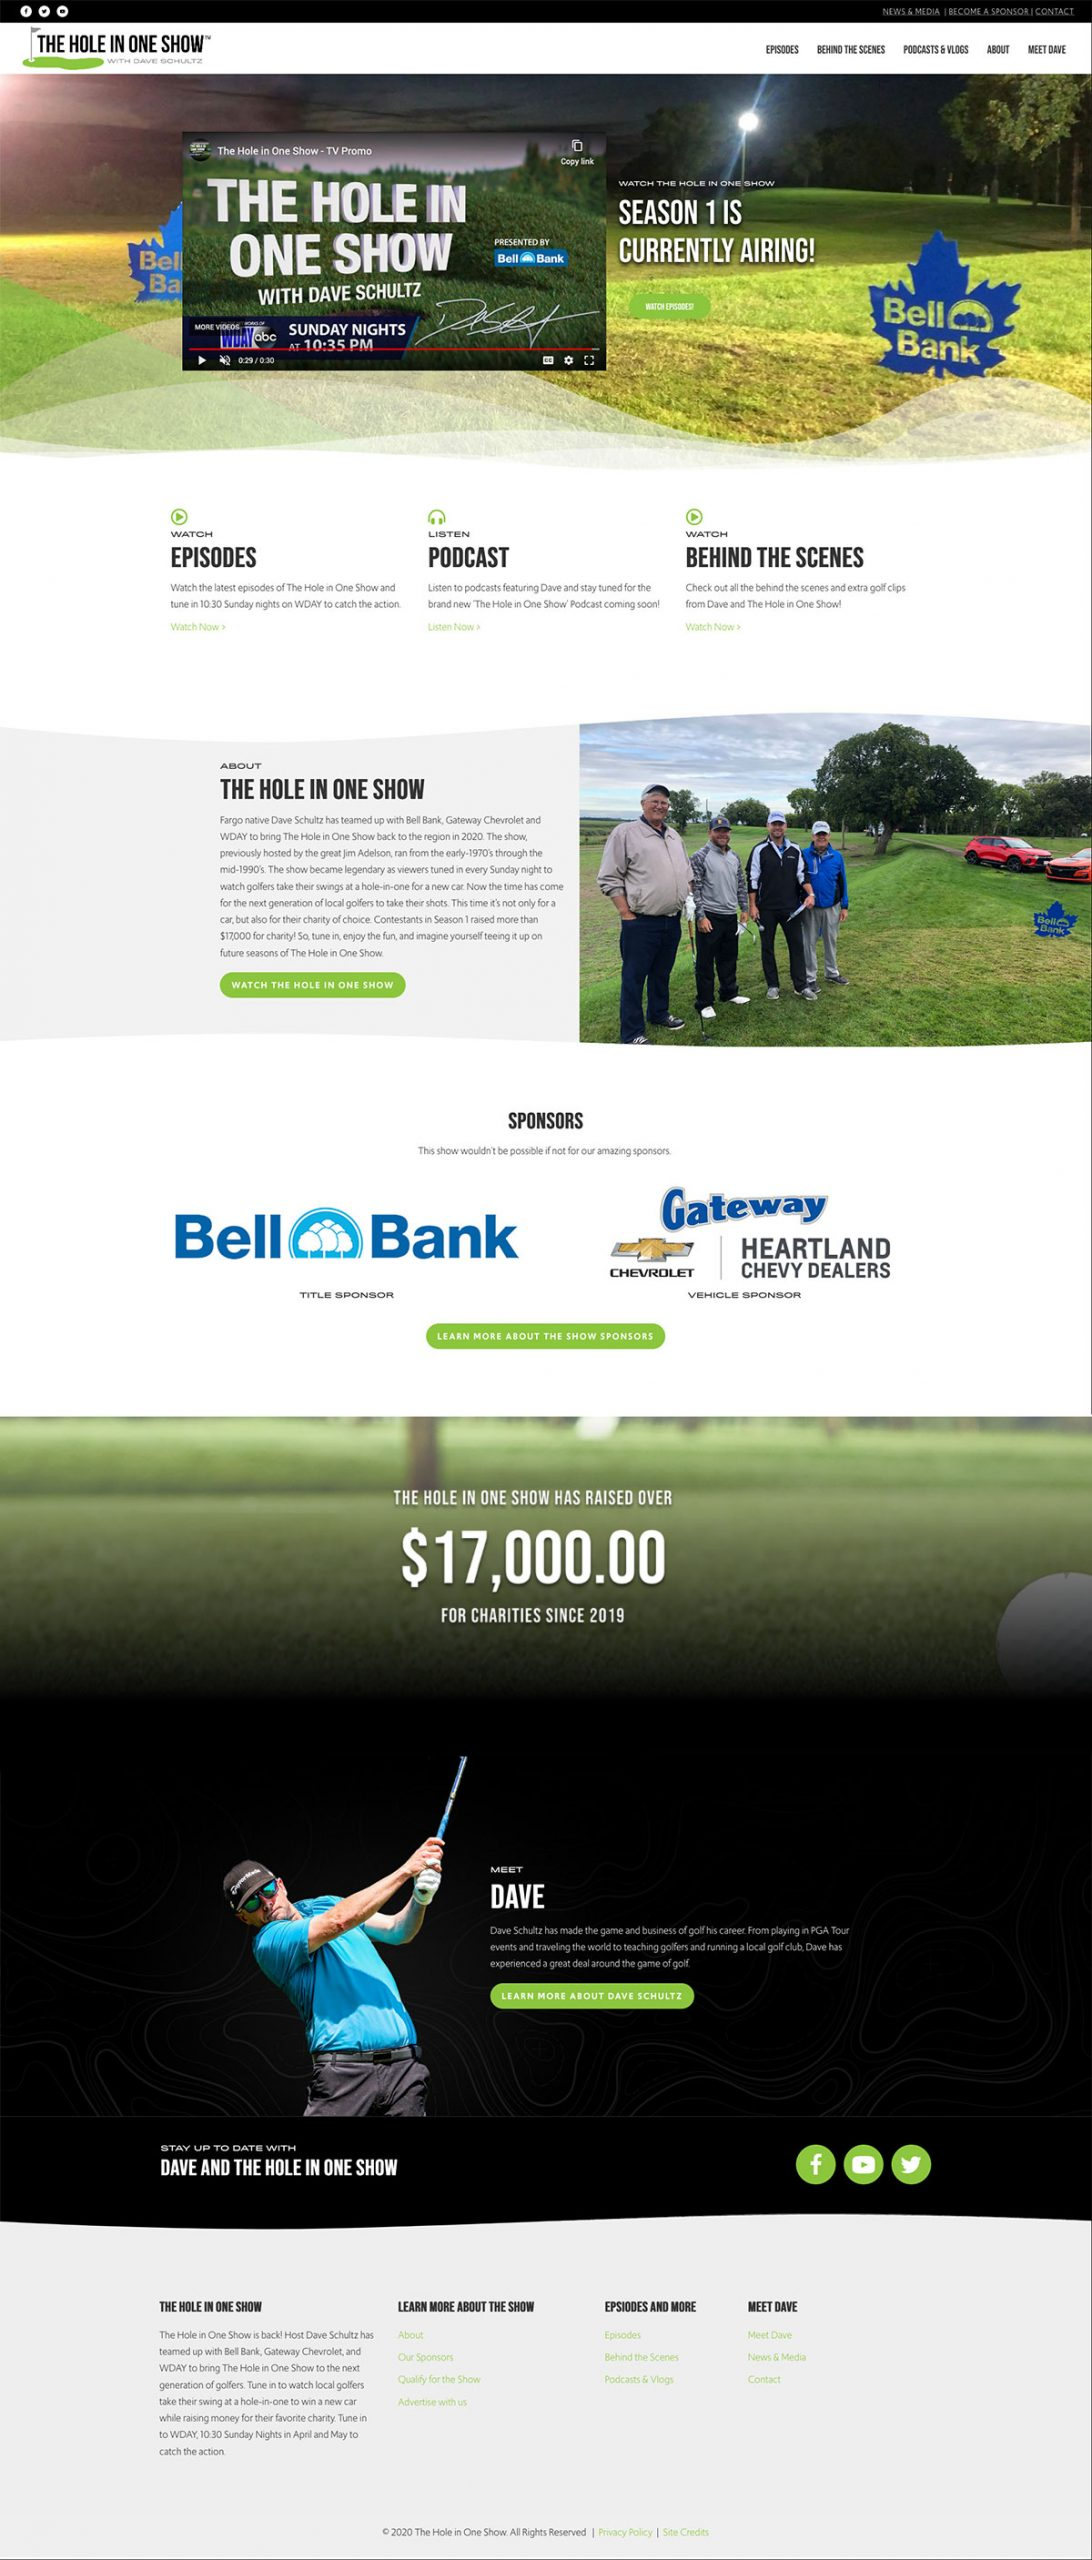 The Hole in One Show Home Page Screenshot